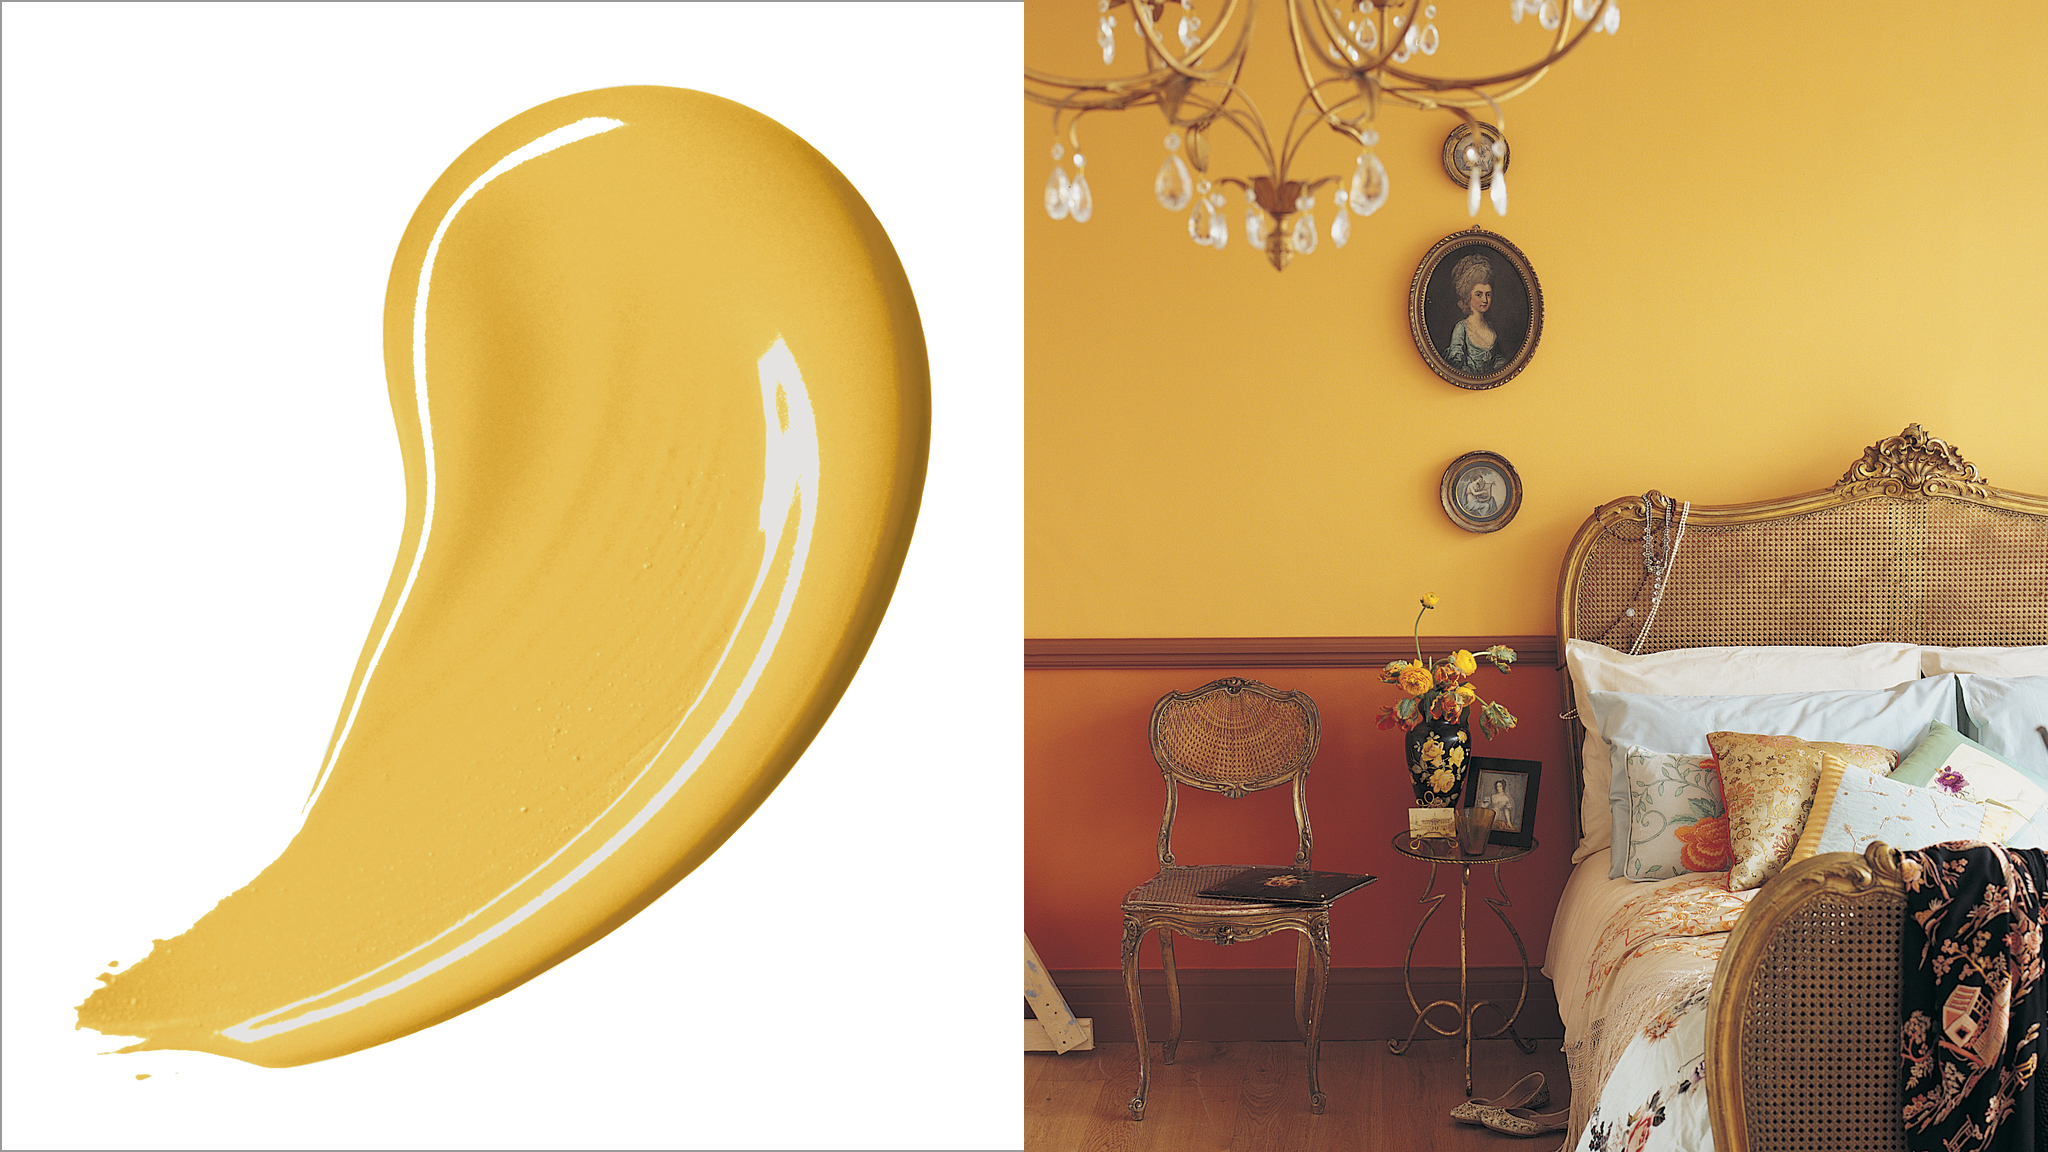 Gold tones ooze opulence, making them the perfect choice if you want to surround your guests with luxury.